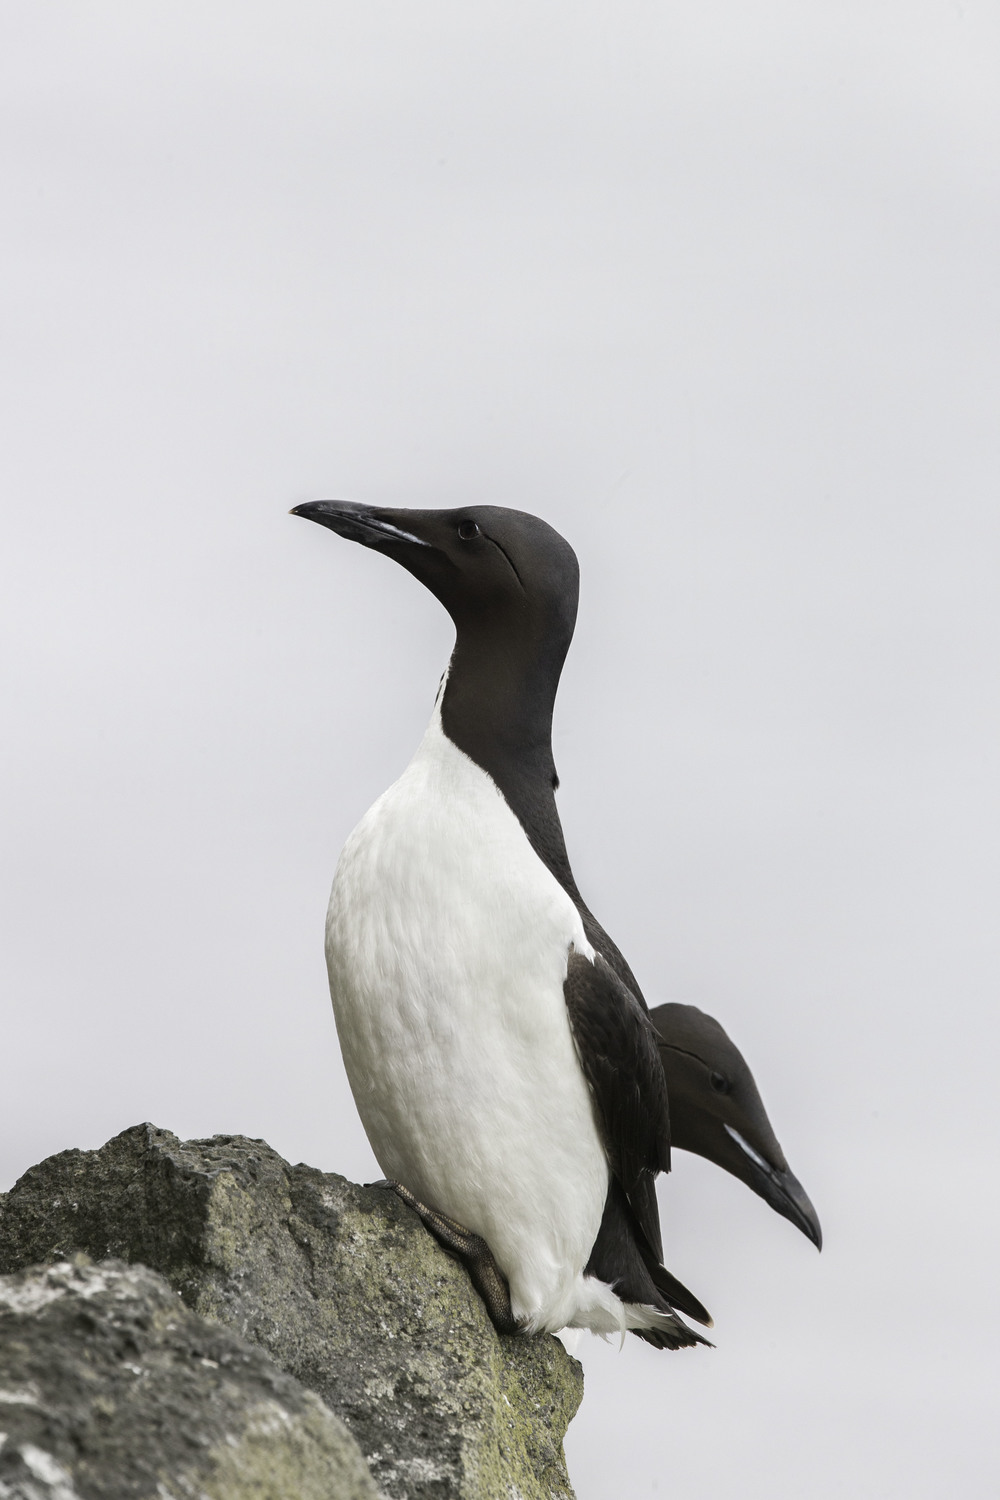 common_murre_AG3P1772b.jpg